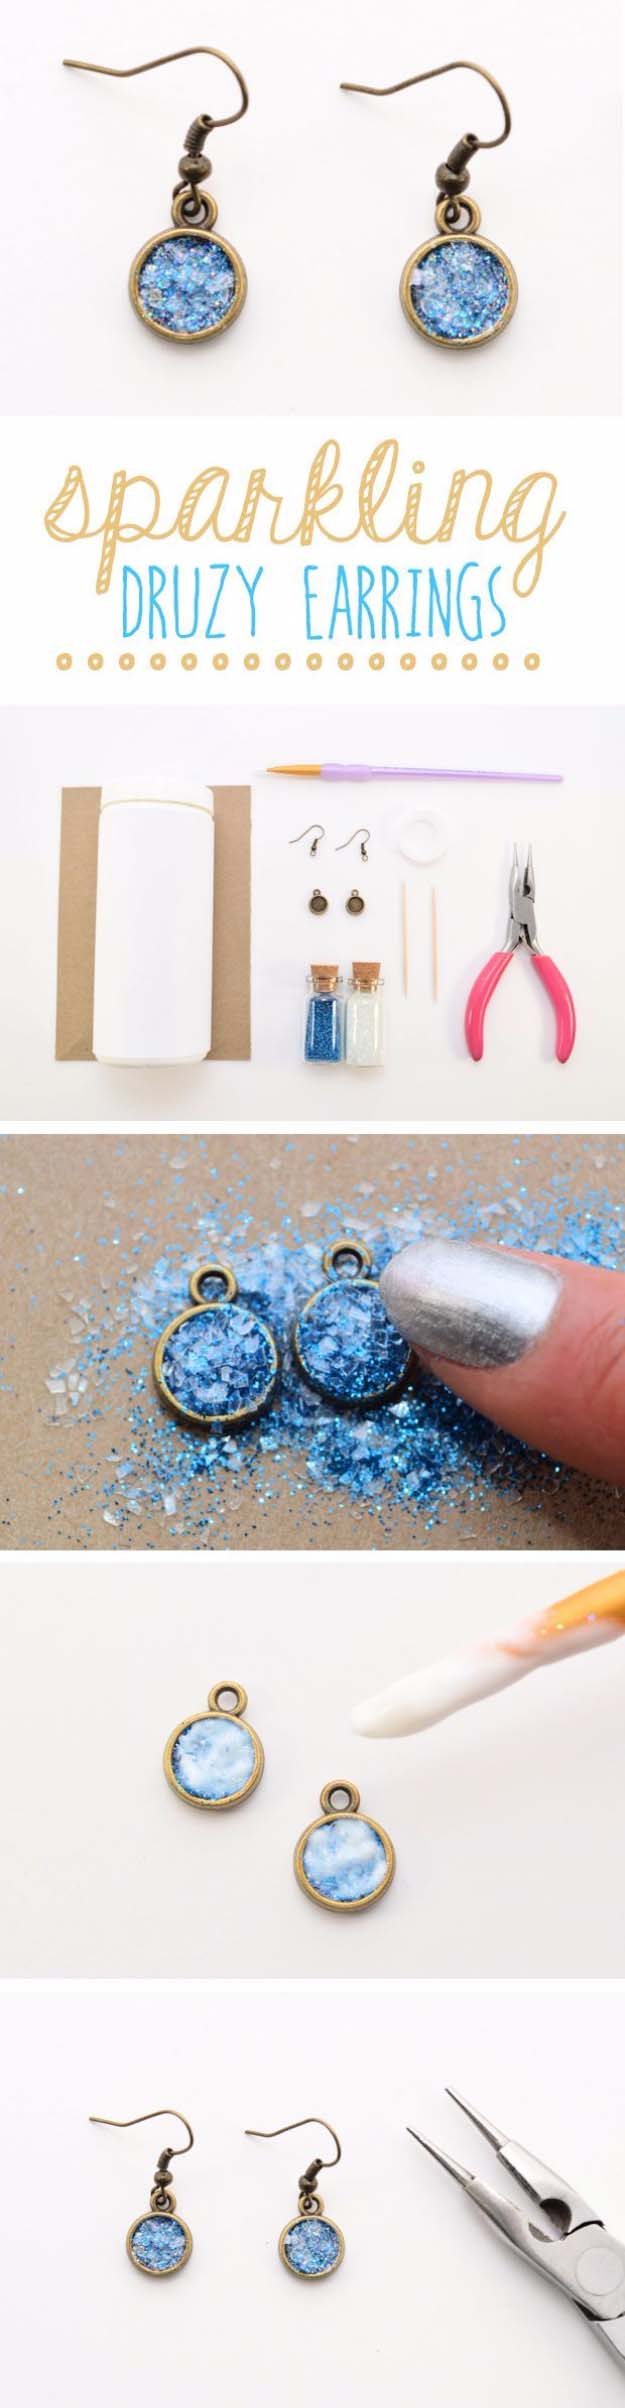 DIY Gifts for Your Girlfriend and Cool Homemade Gift Ideas for Her | Easy Creative DIY Projects and Tutorials for Christmas, Birthday and Anniversary Gifts for Mom, Sister, Aunt, Teacher or Friends | Sparklng Glitter Druzy Earrings for Cool Homemade DIY Fashion #diygifts #diyideas